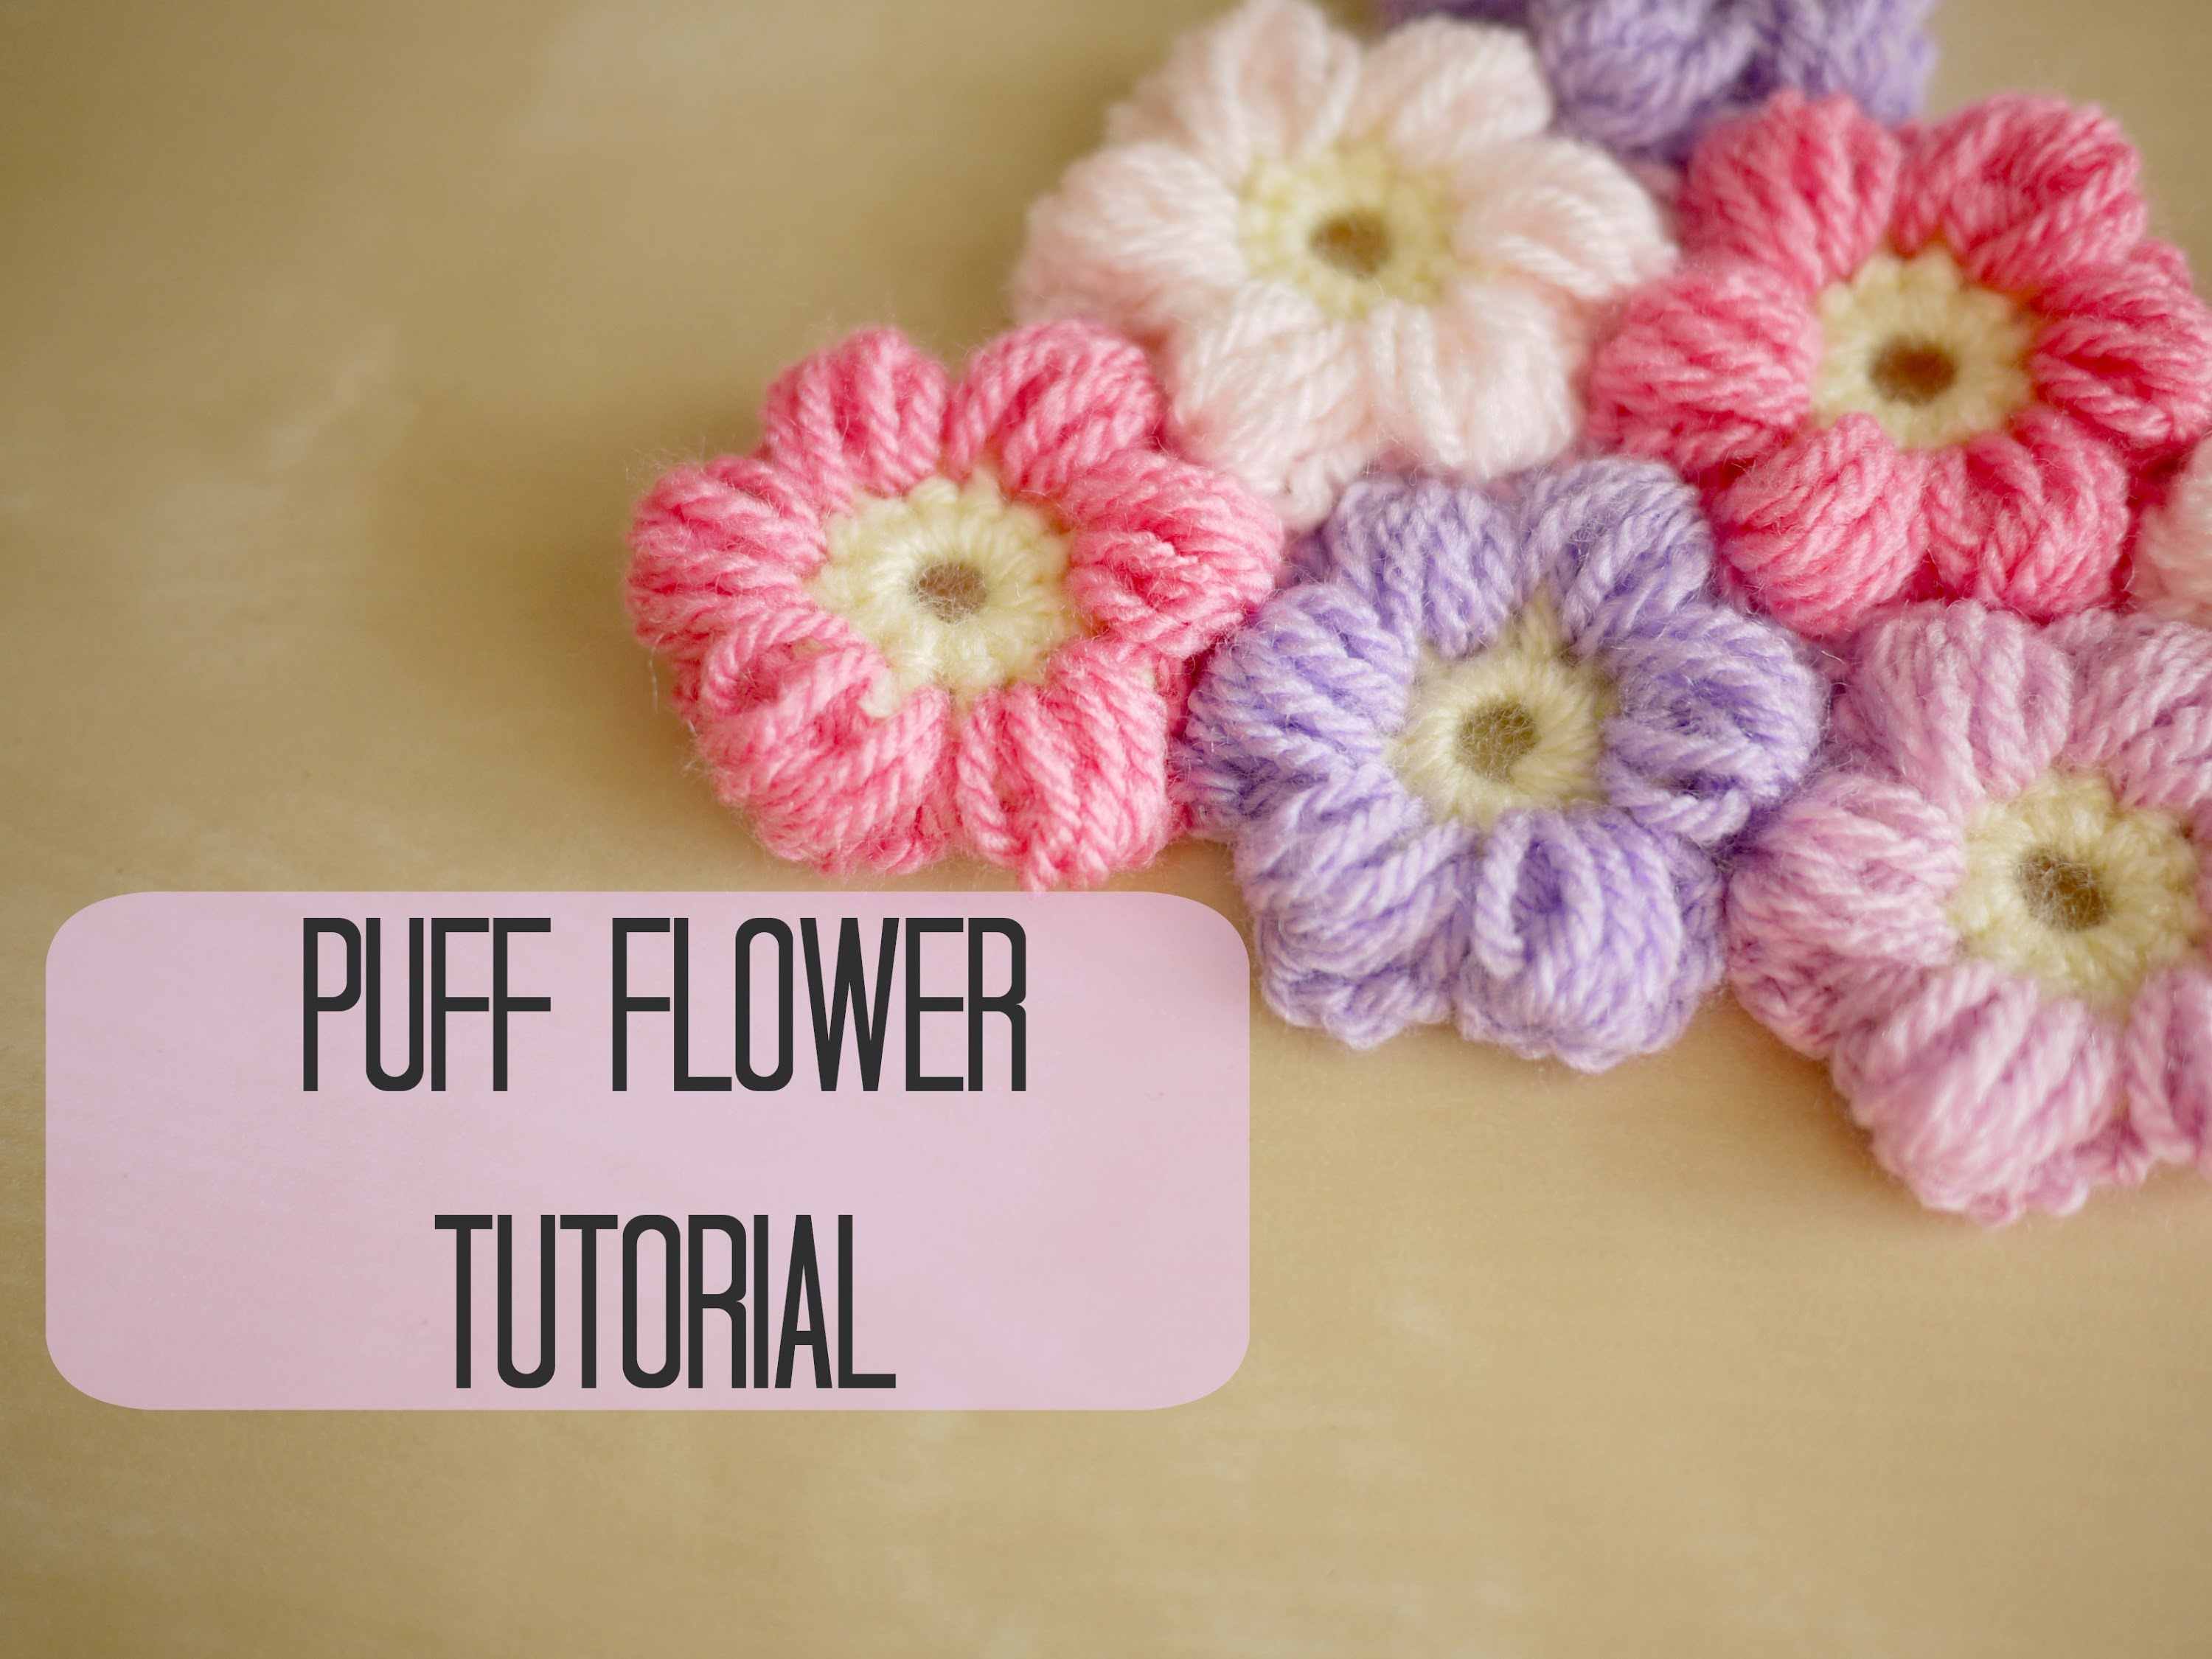 Puff Flowers Crochet Pattern & Video Tutorial